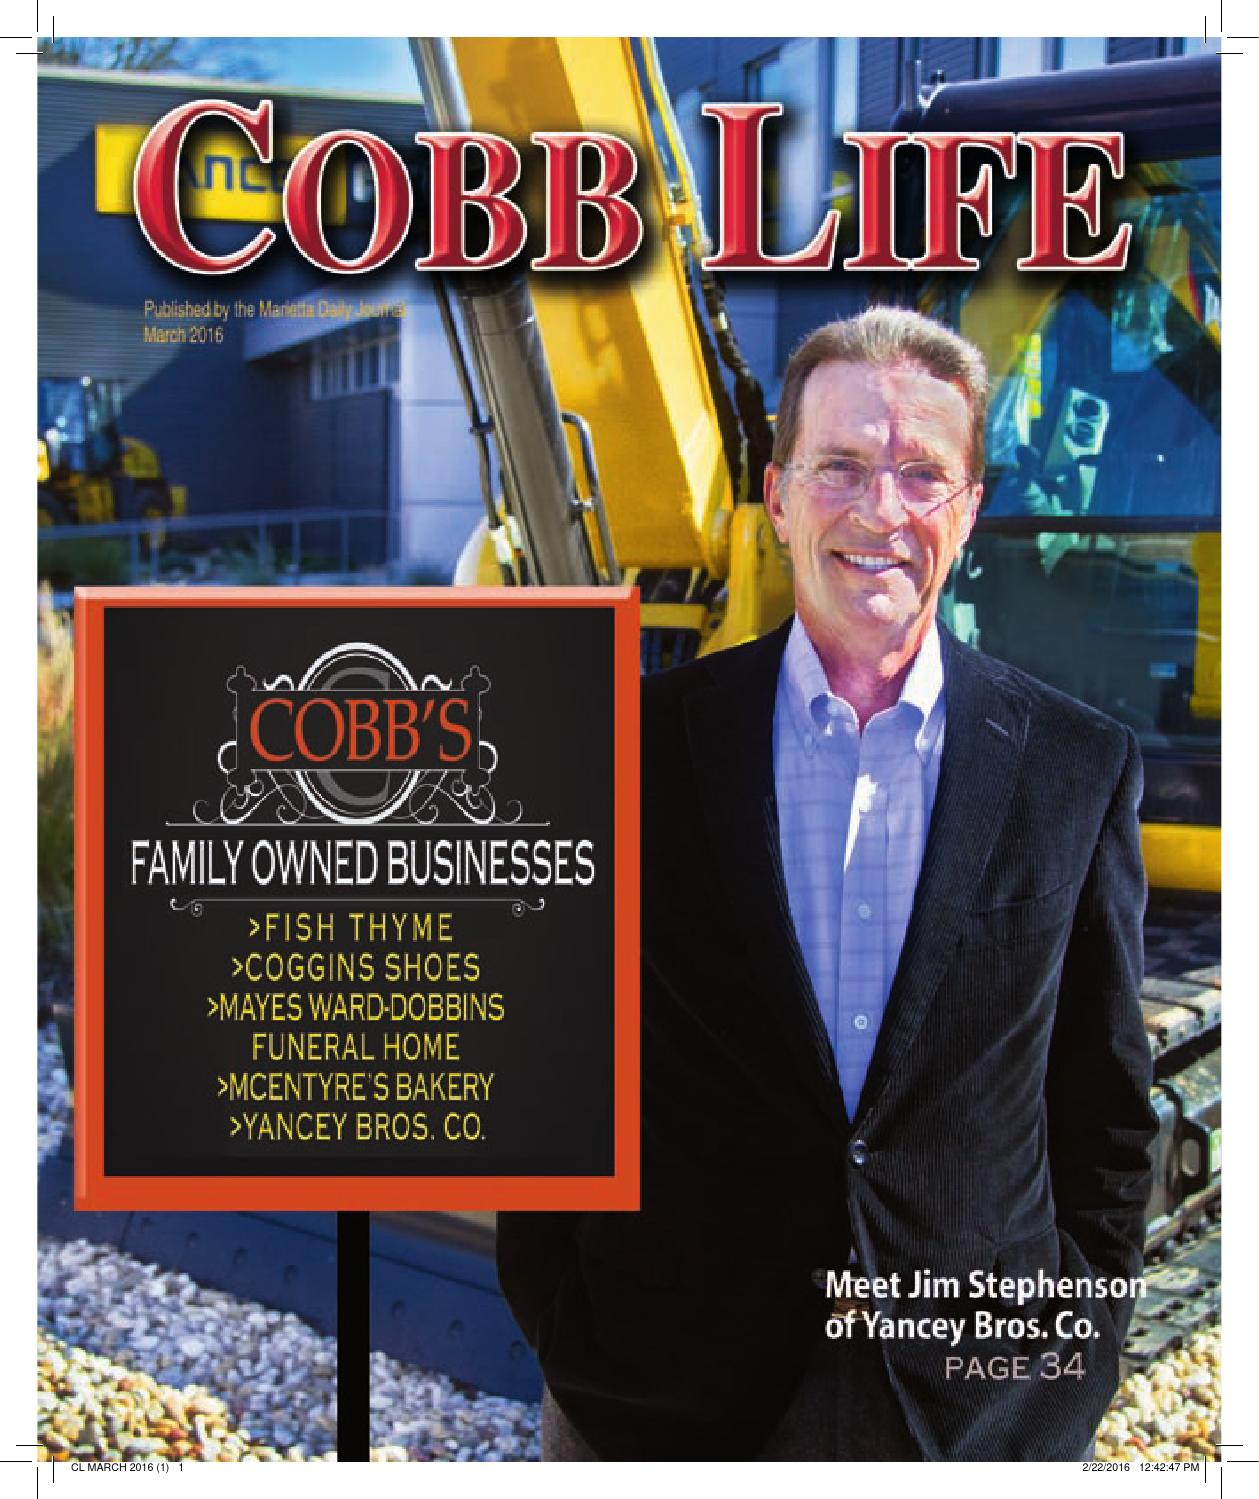 Ed Voyles Kia Home: Cobb Life March 2016 By Otis Brumby III